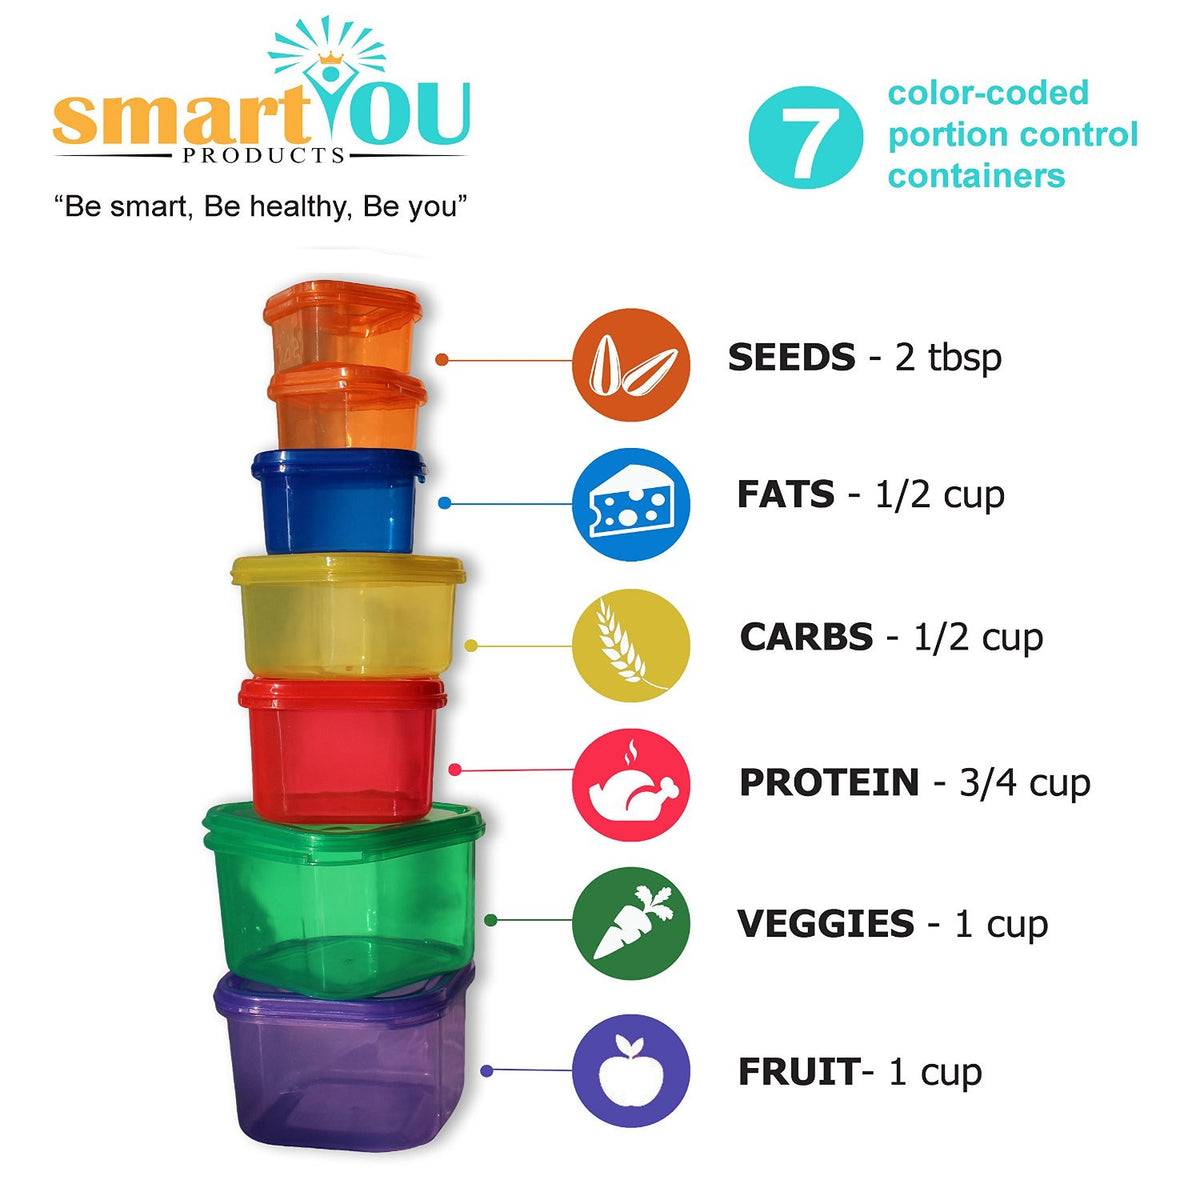 smartYOU 7 Piece Portion Control Containers Kit